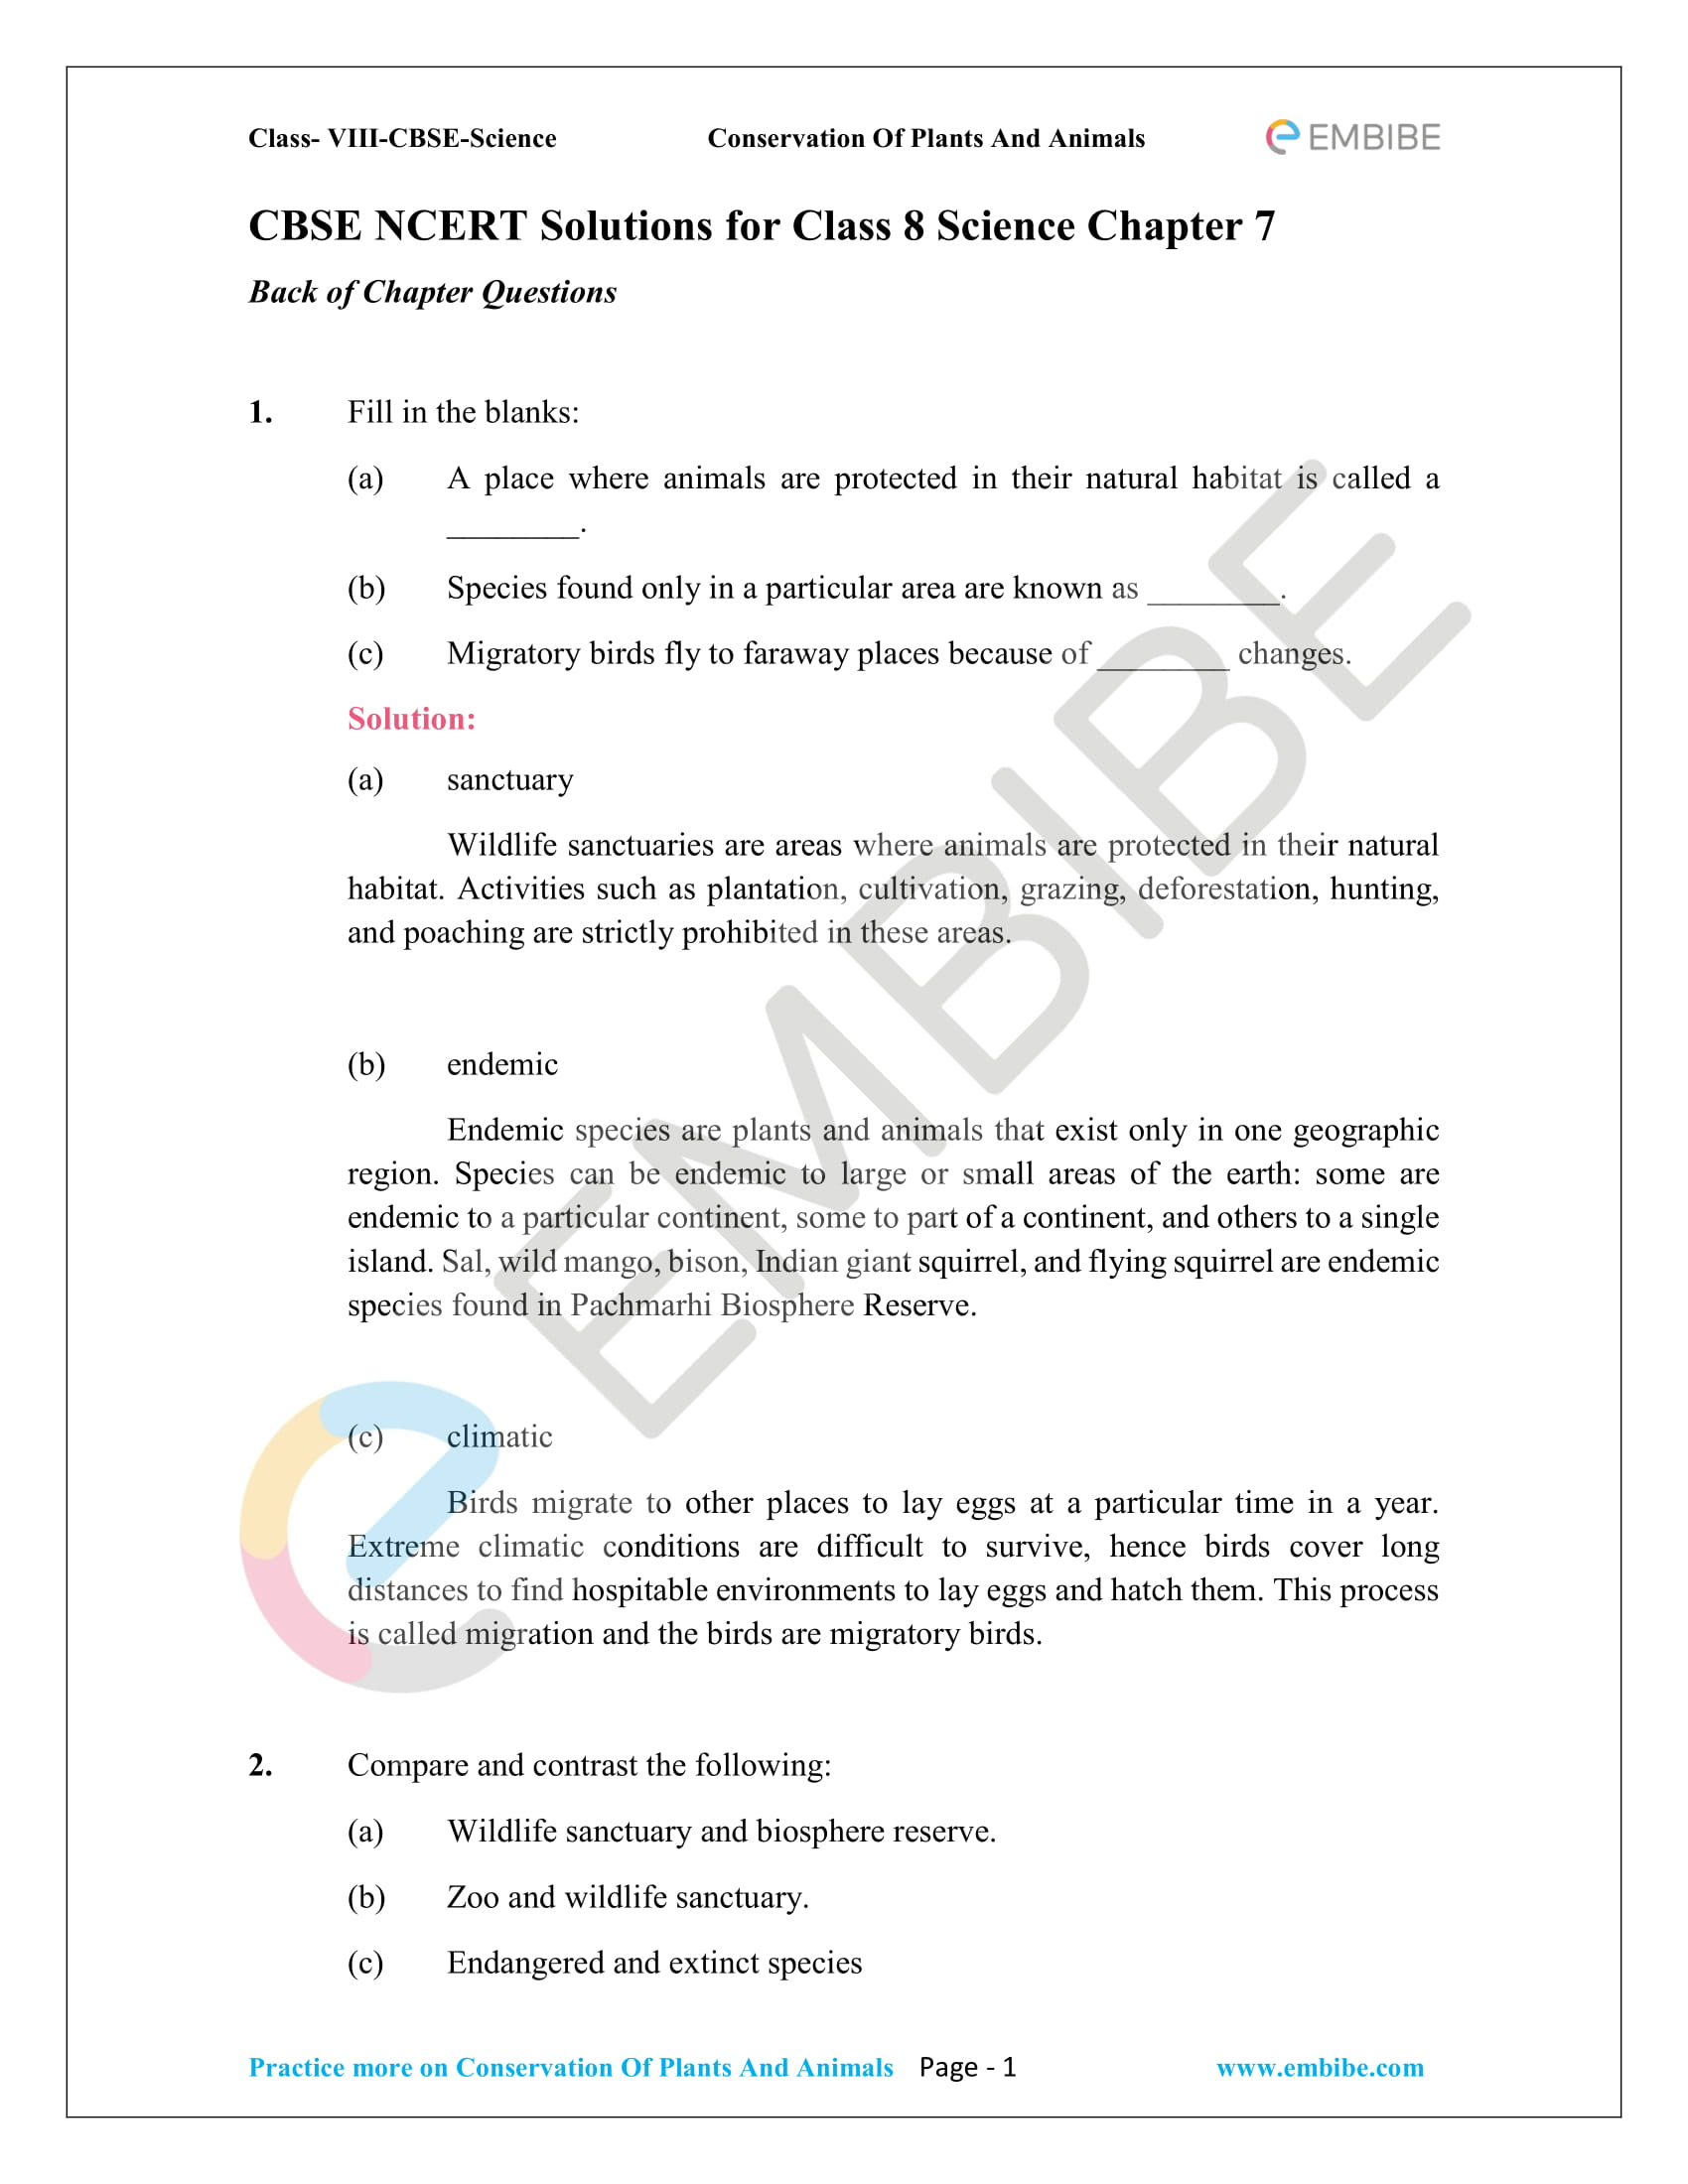 NCERT Solutions For Class 8 Science Chapter 7: Conservation